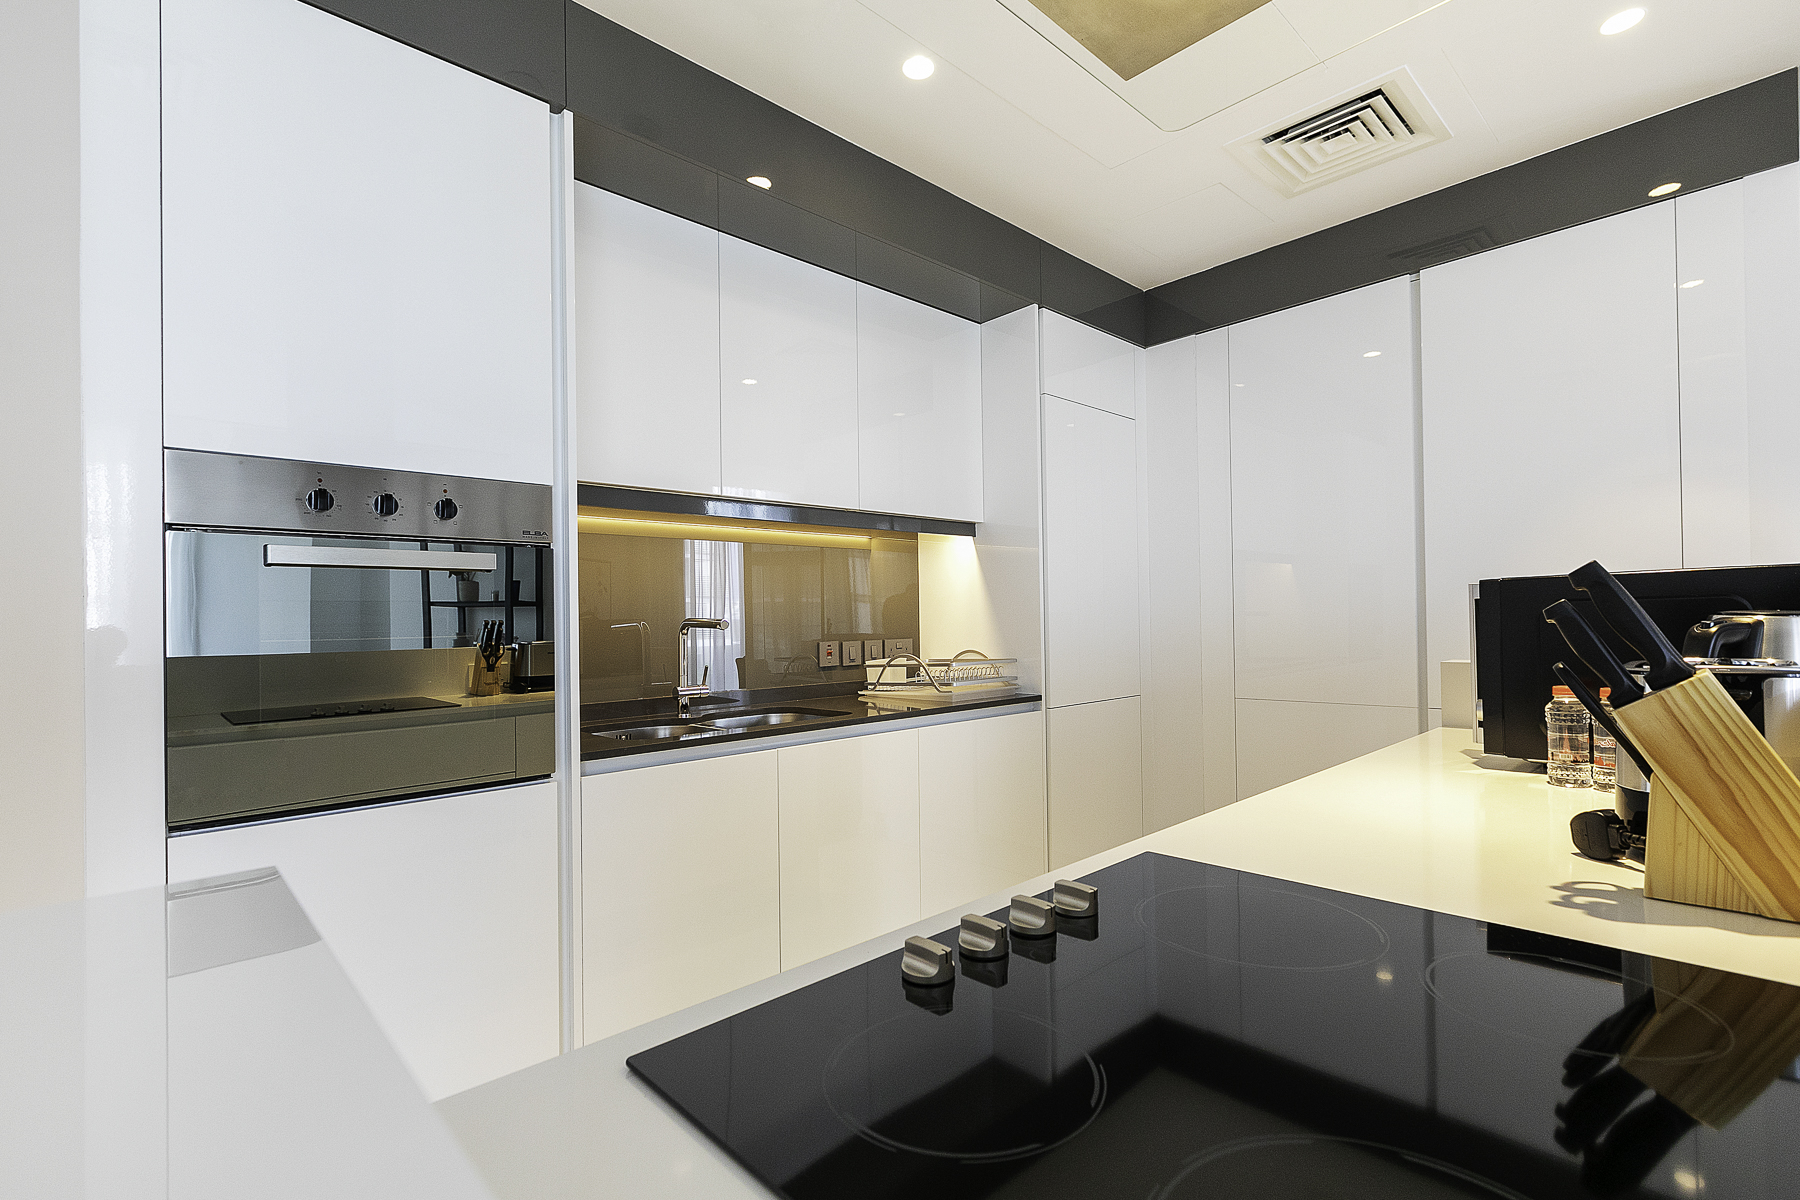 Apartment Experience the Bluewaters lifestyle On This All New 1 Bed in Building 5 photo 20221694